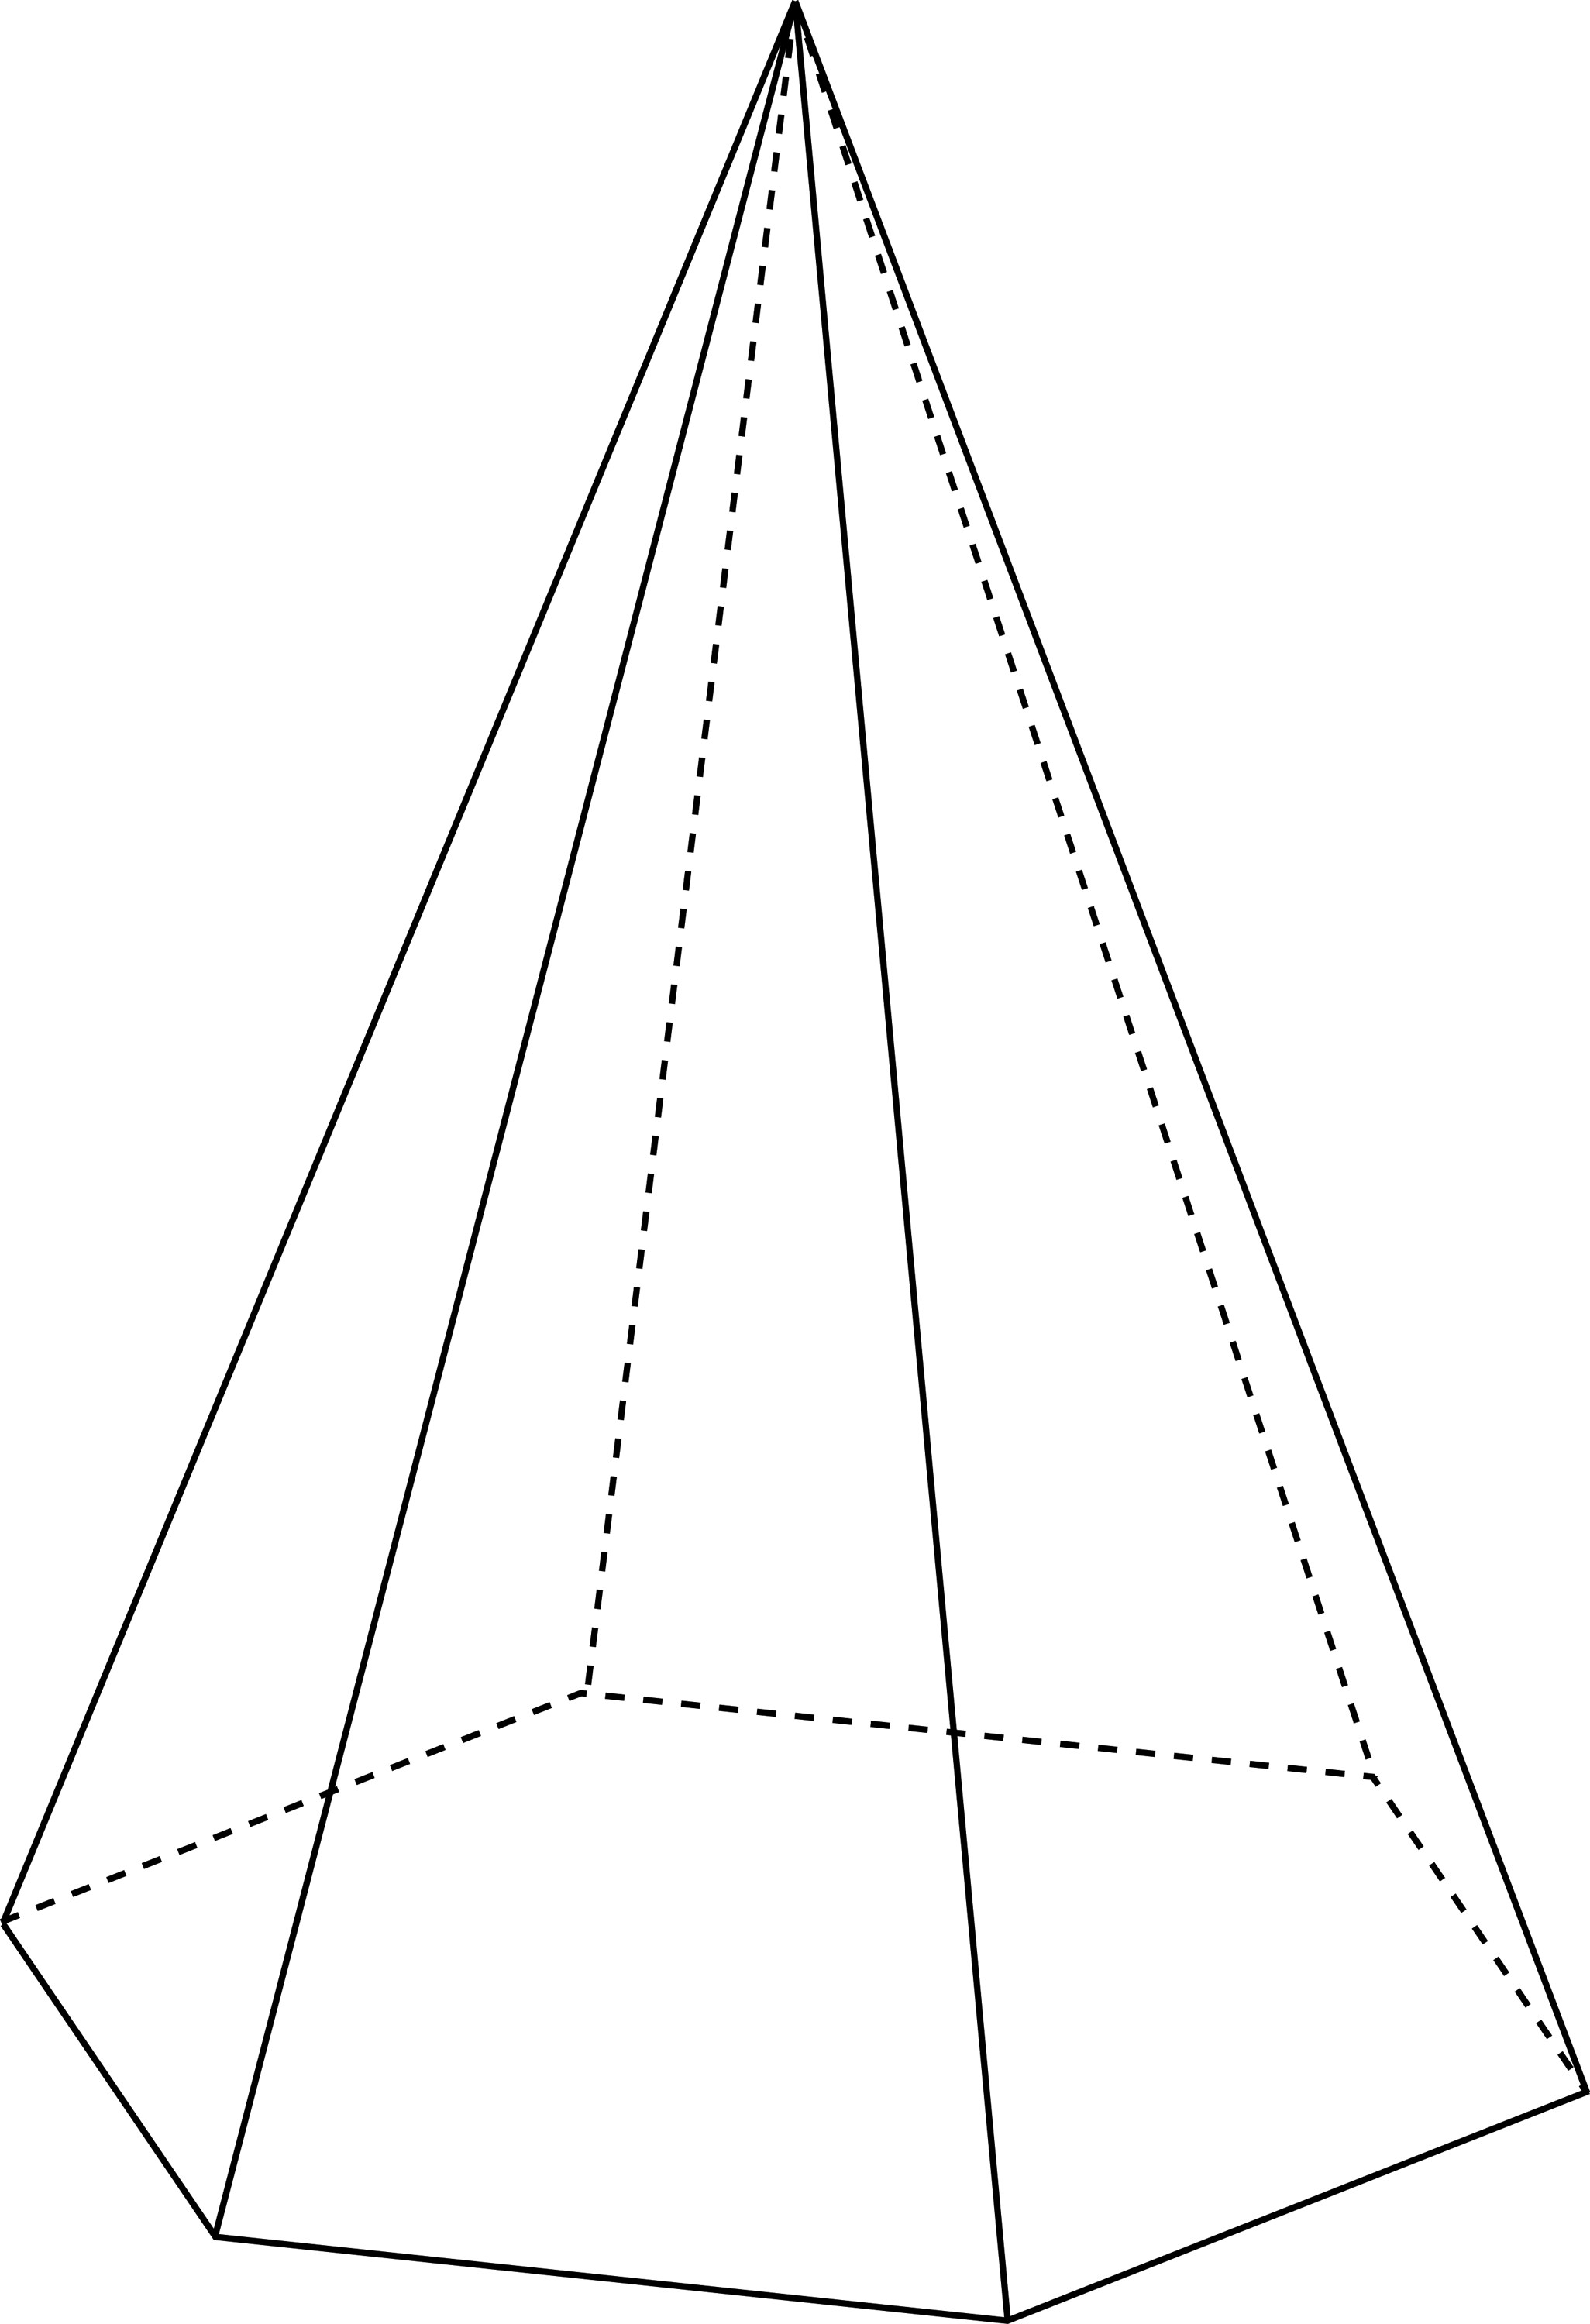 Hexagonal Pyramid Clipart Etc